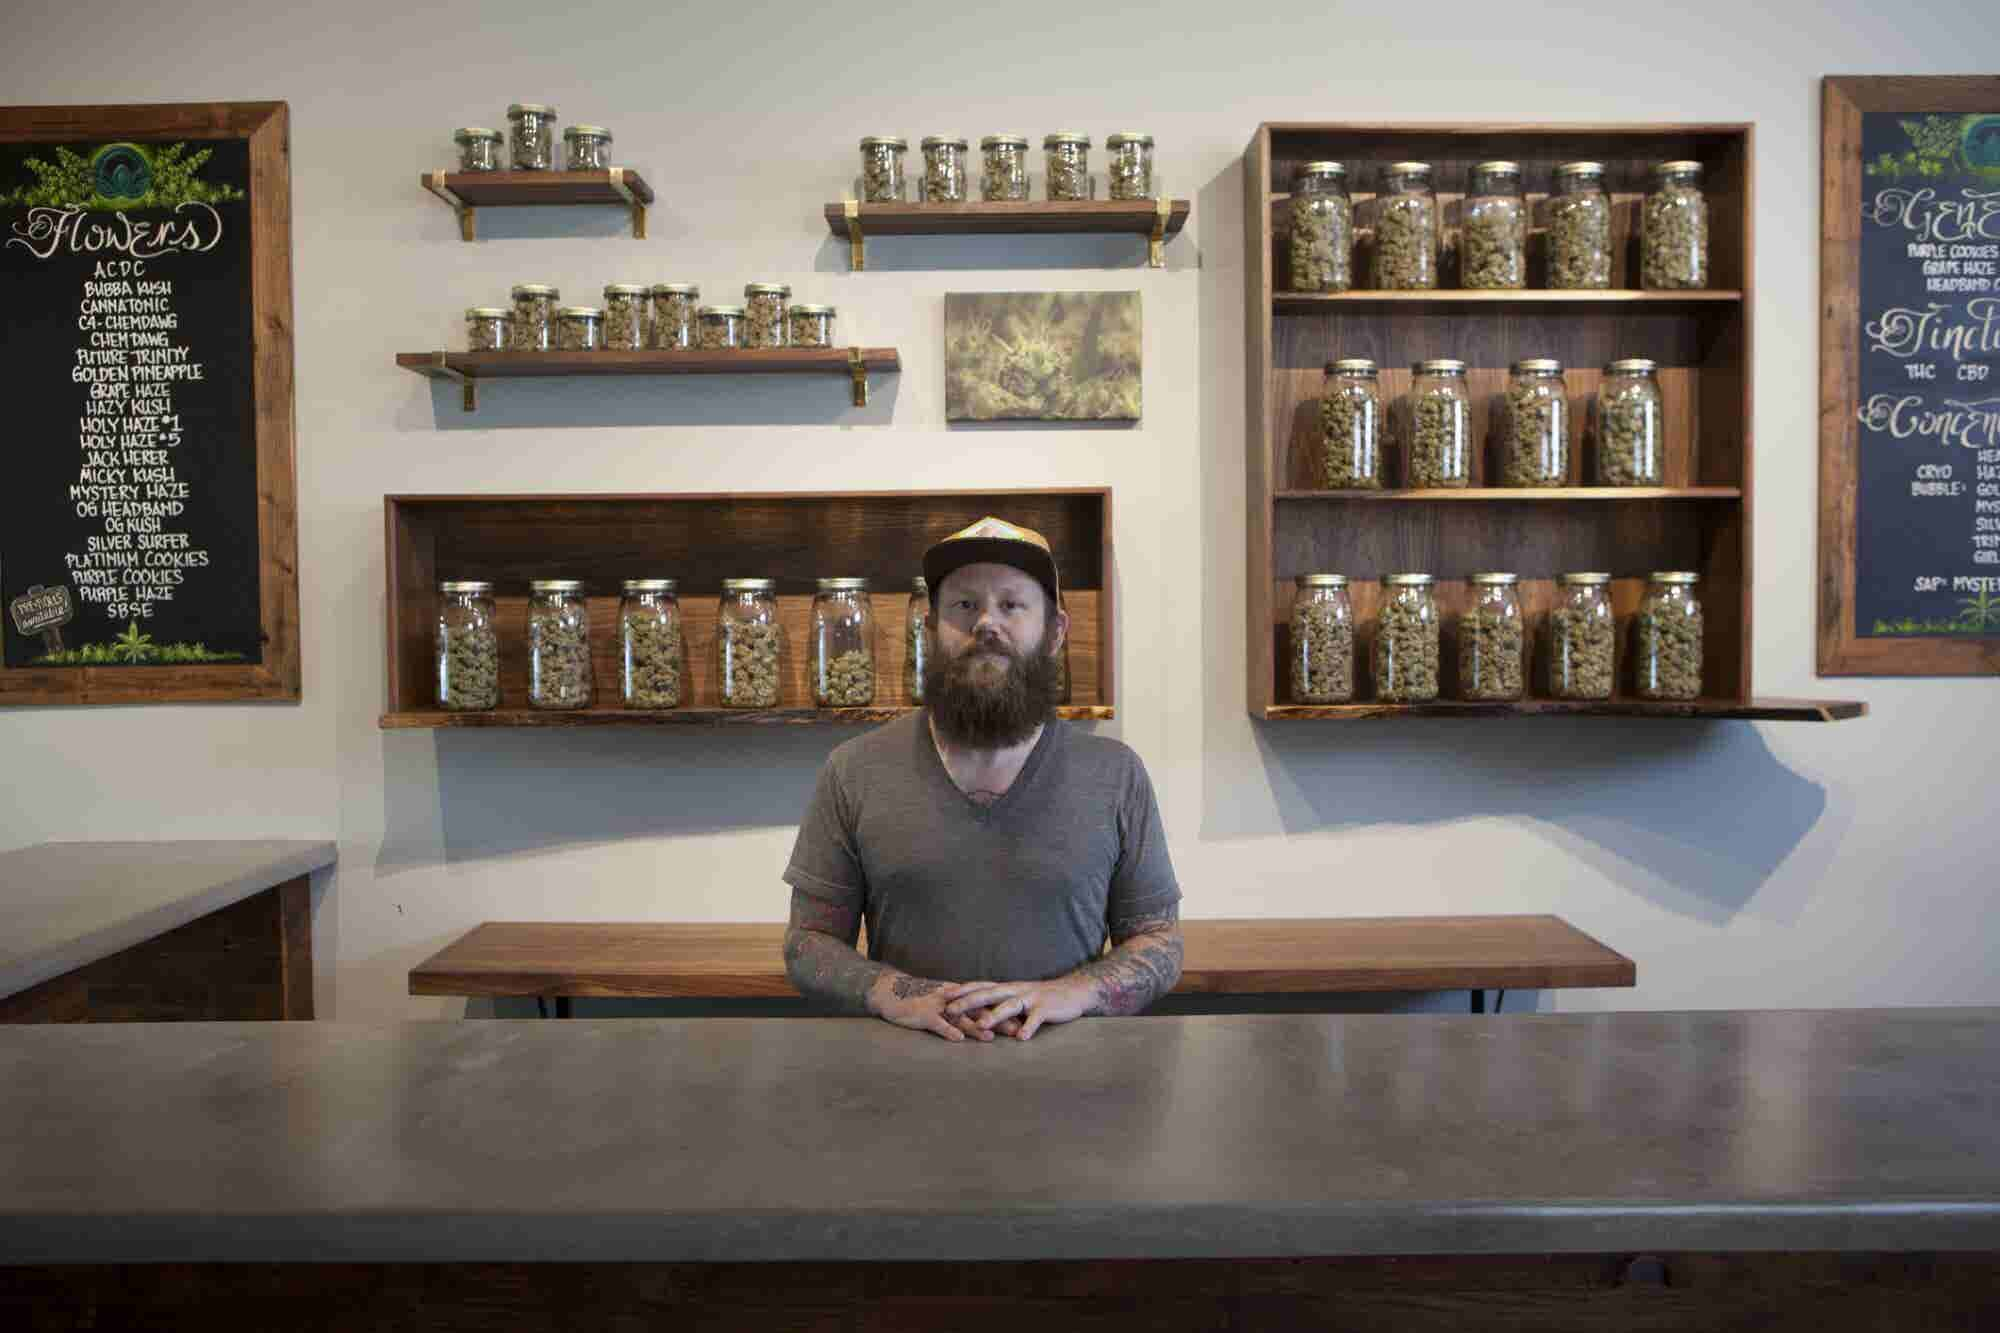 7 Facts About Starting a Cannabis Dispensary in 2019